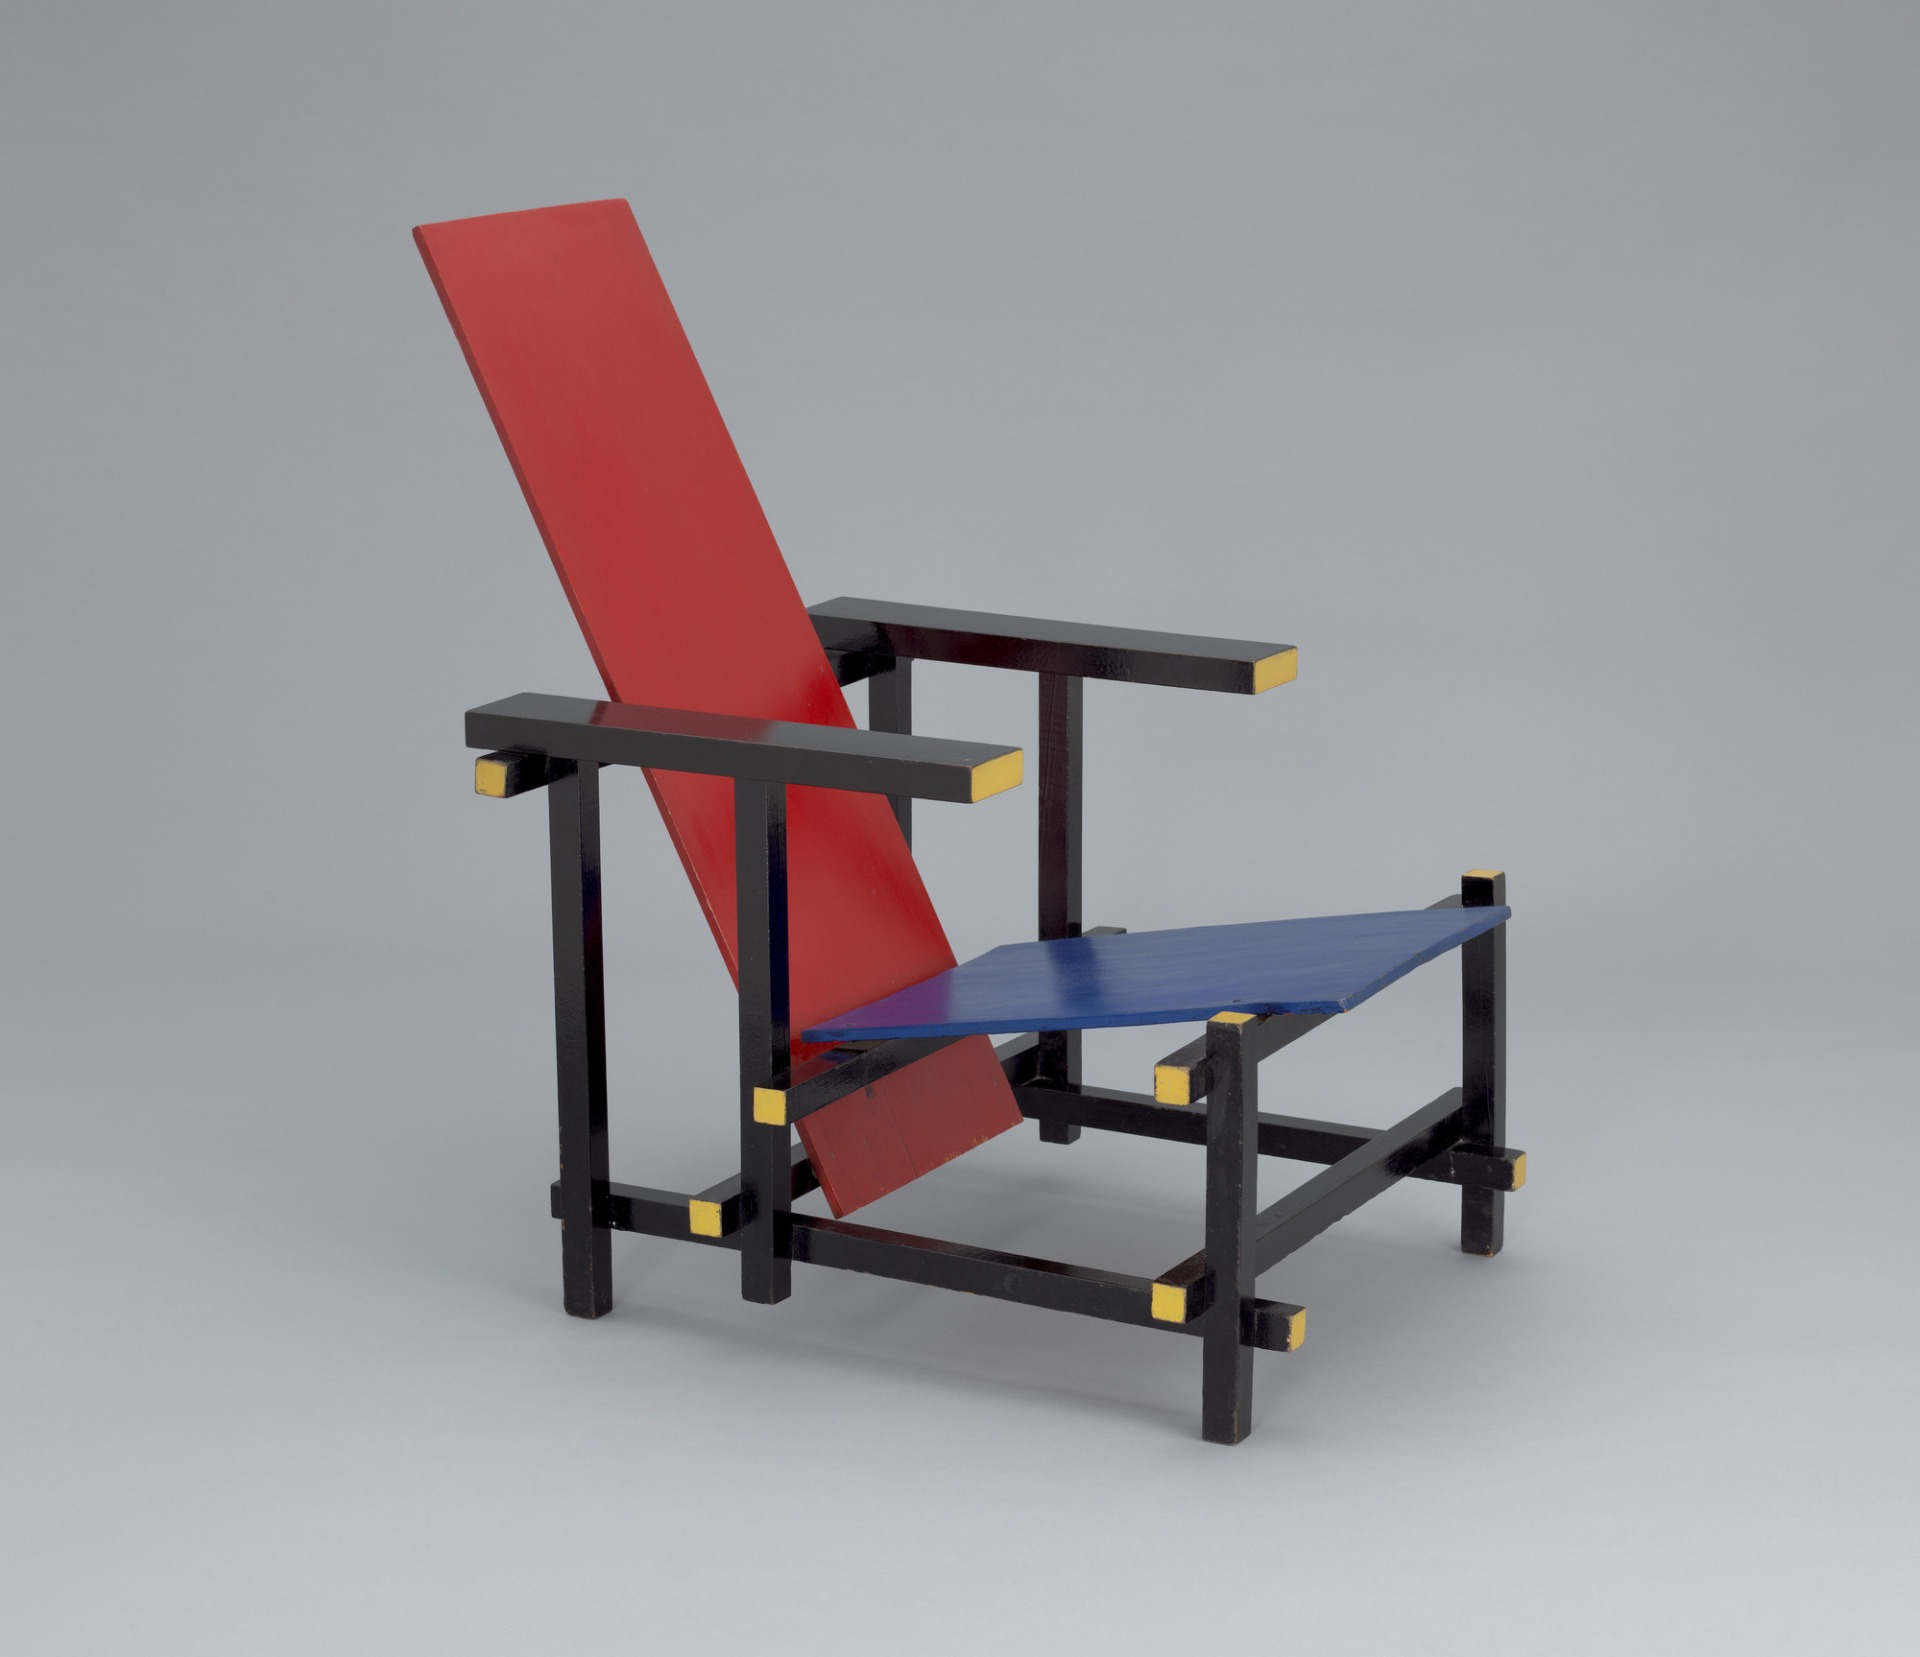 Iconic Chairs: The Top 10 Chairs Designed By Architects iconic chairs Iconic Chairs: The Top 10 Chairs Designed By Architects Red Blue Chair